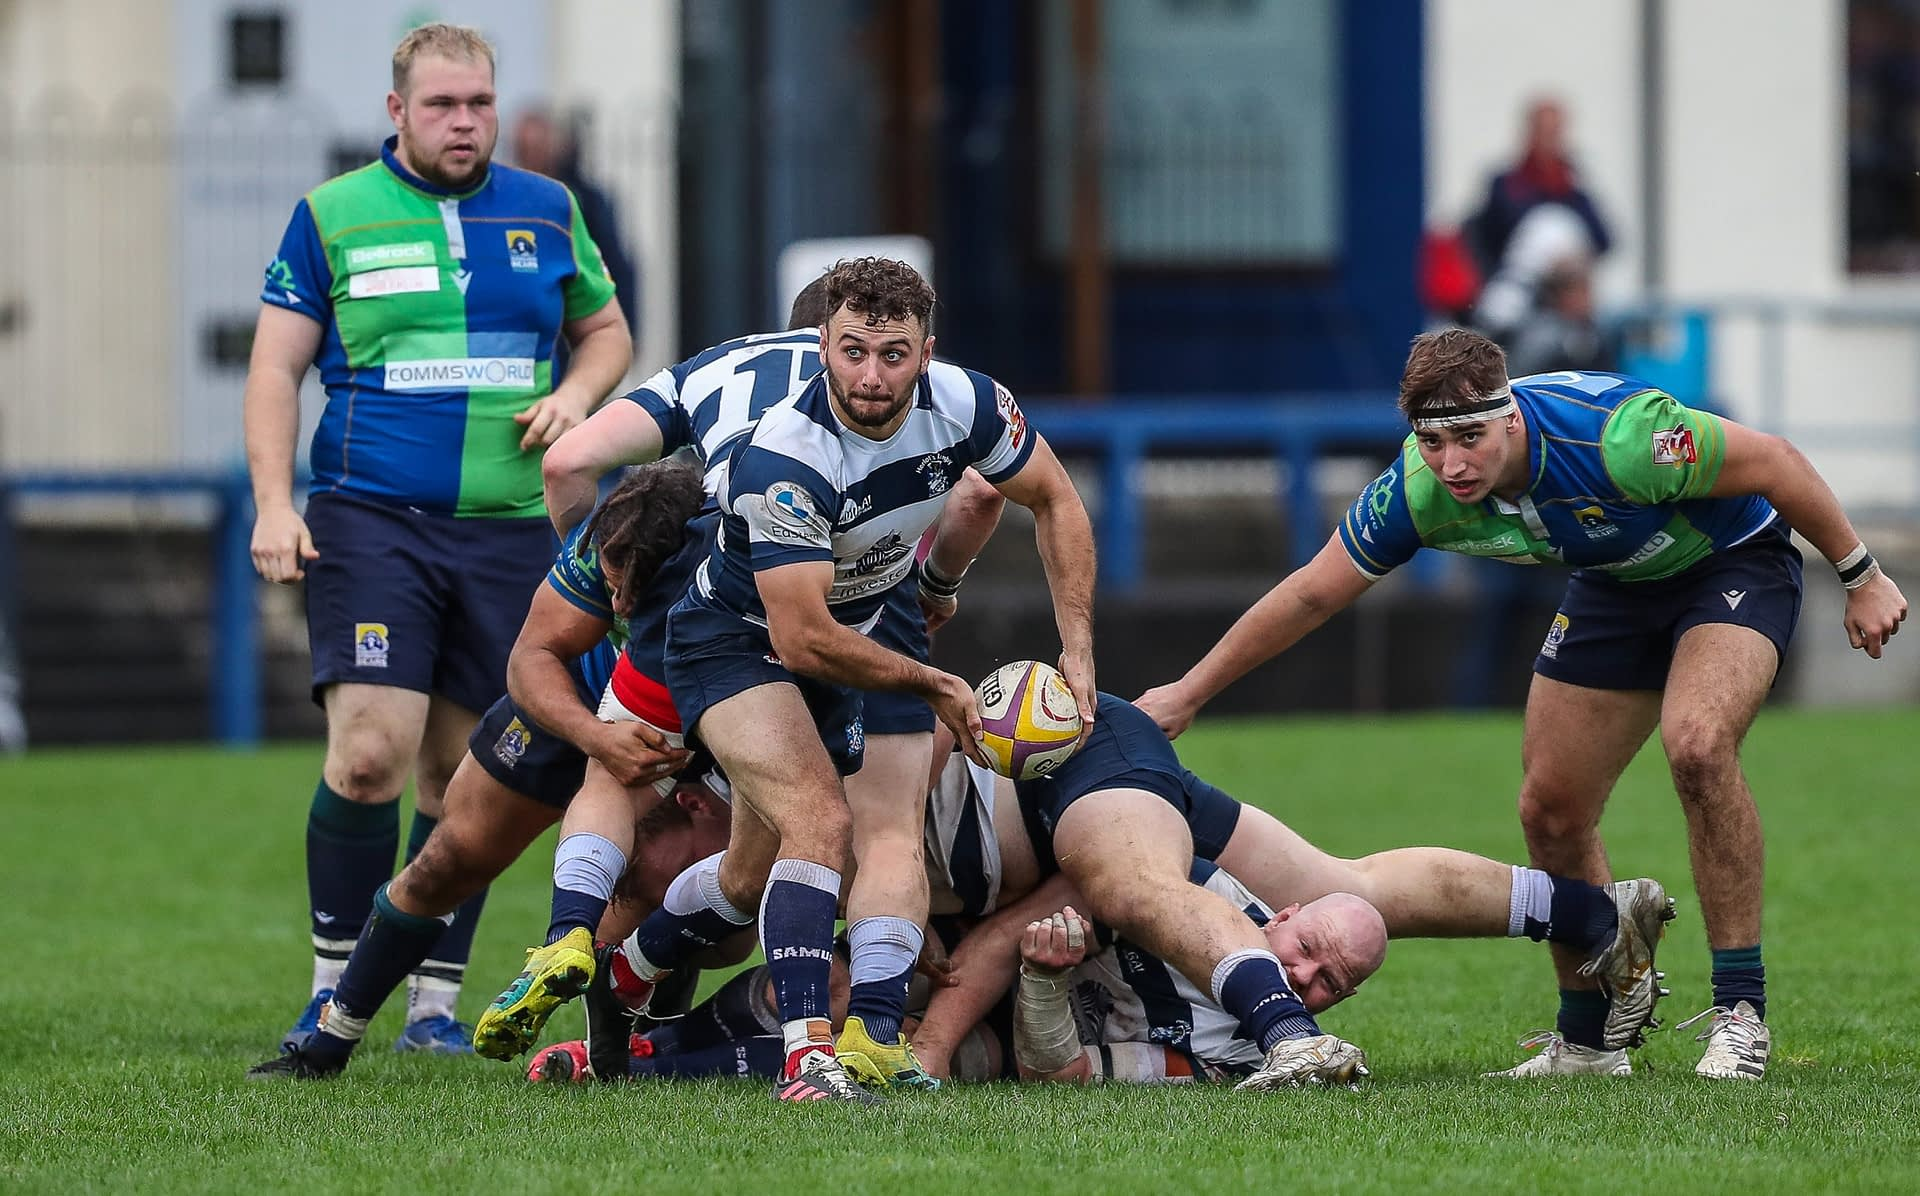 Heriots Lloyd Wheeldon passes from the base of a ruck.FOSROC Super 6 match between Heriot's Rugby and Boroughmuir Bears at Goldenacre, Edinburgh on 09/10/2021. (Photo: 39 Design Photography)